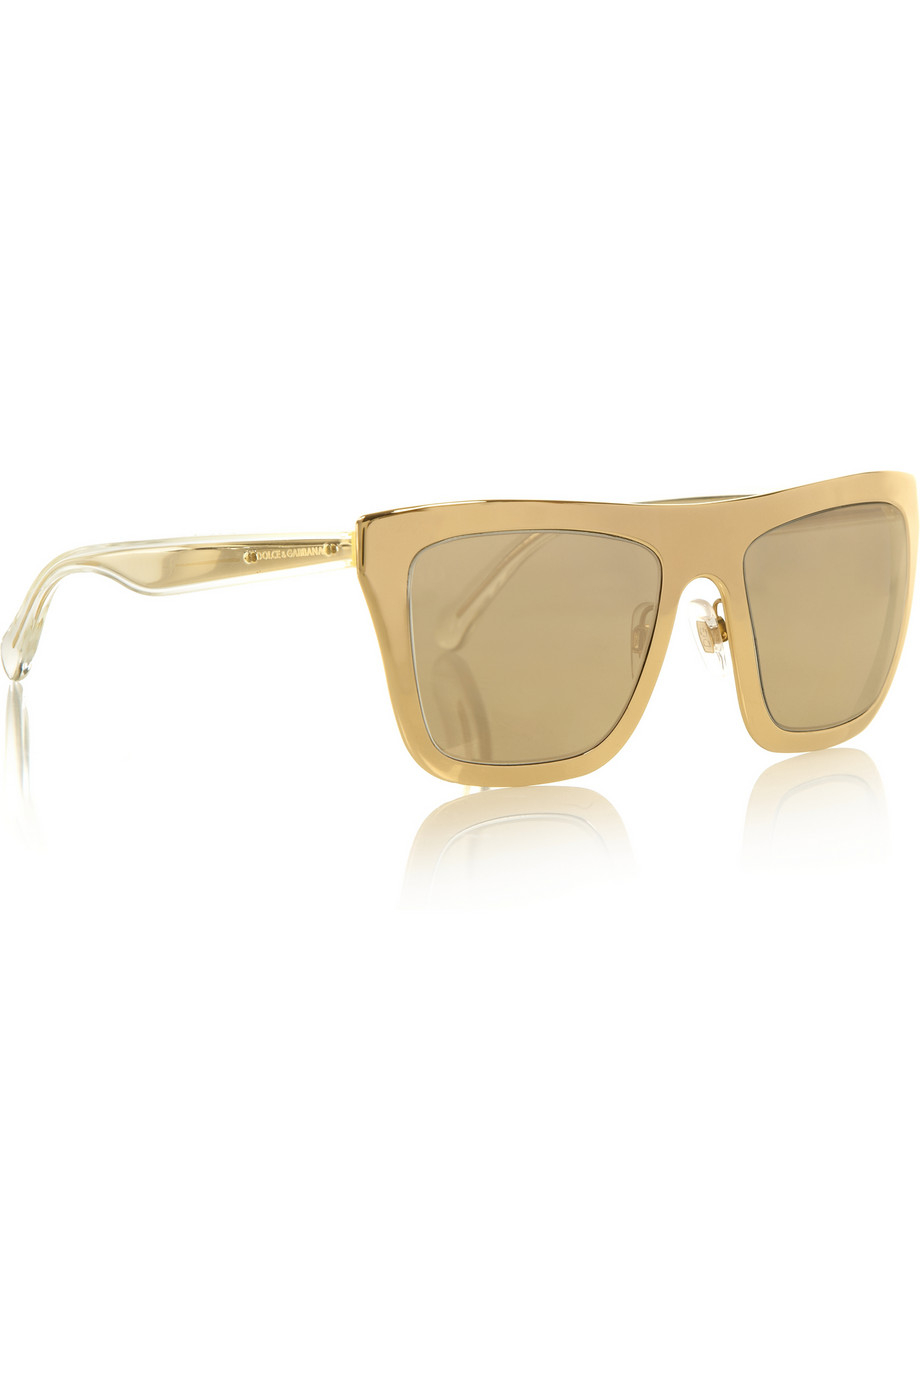 6f51be40ea5 Dolce Gabbana Gold Sunglasses